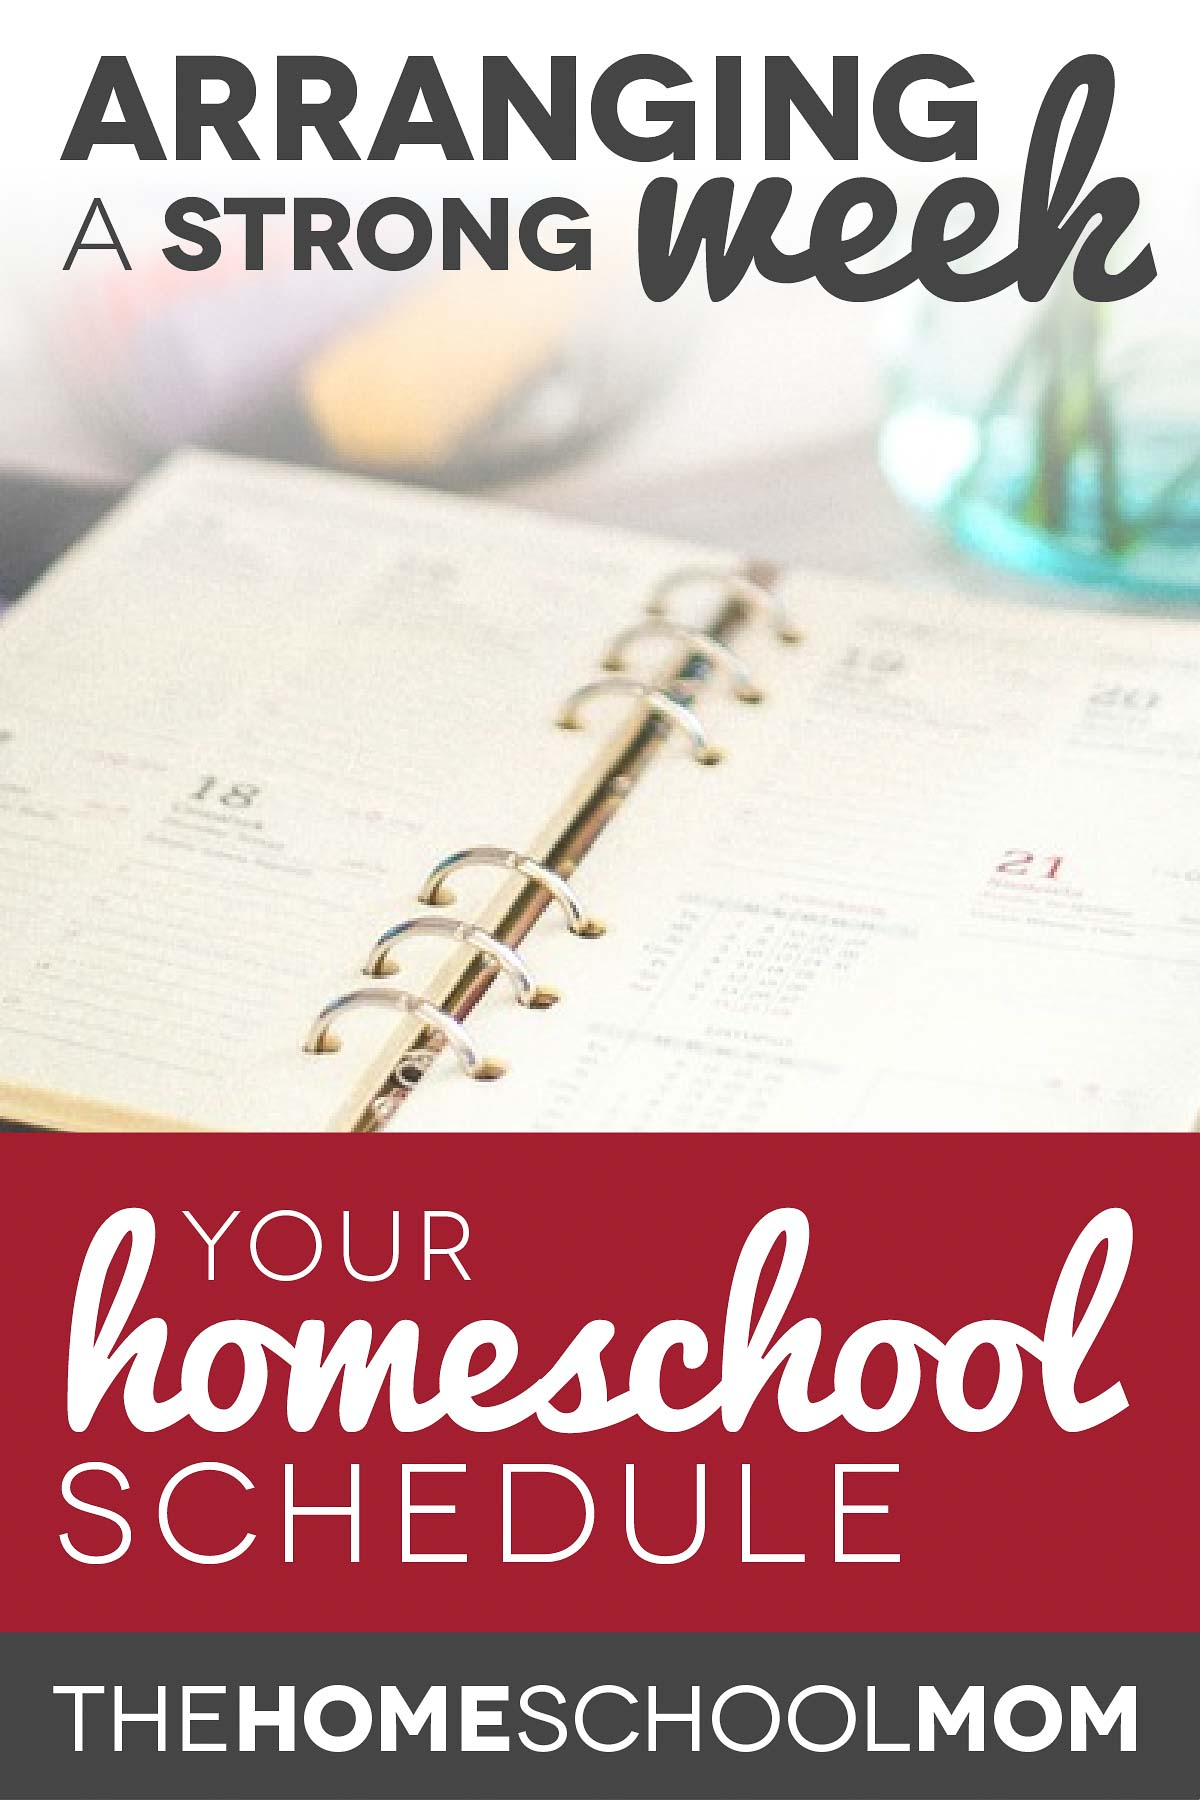 open planner with text Your Homeschool Schedule - Arranging a Strong Week